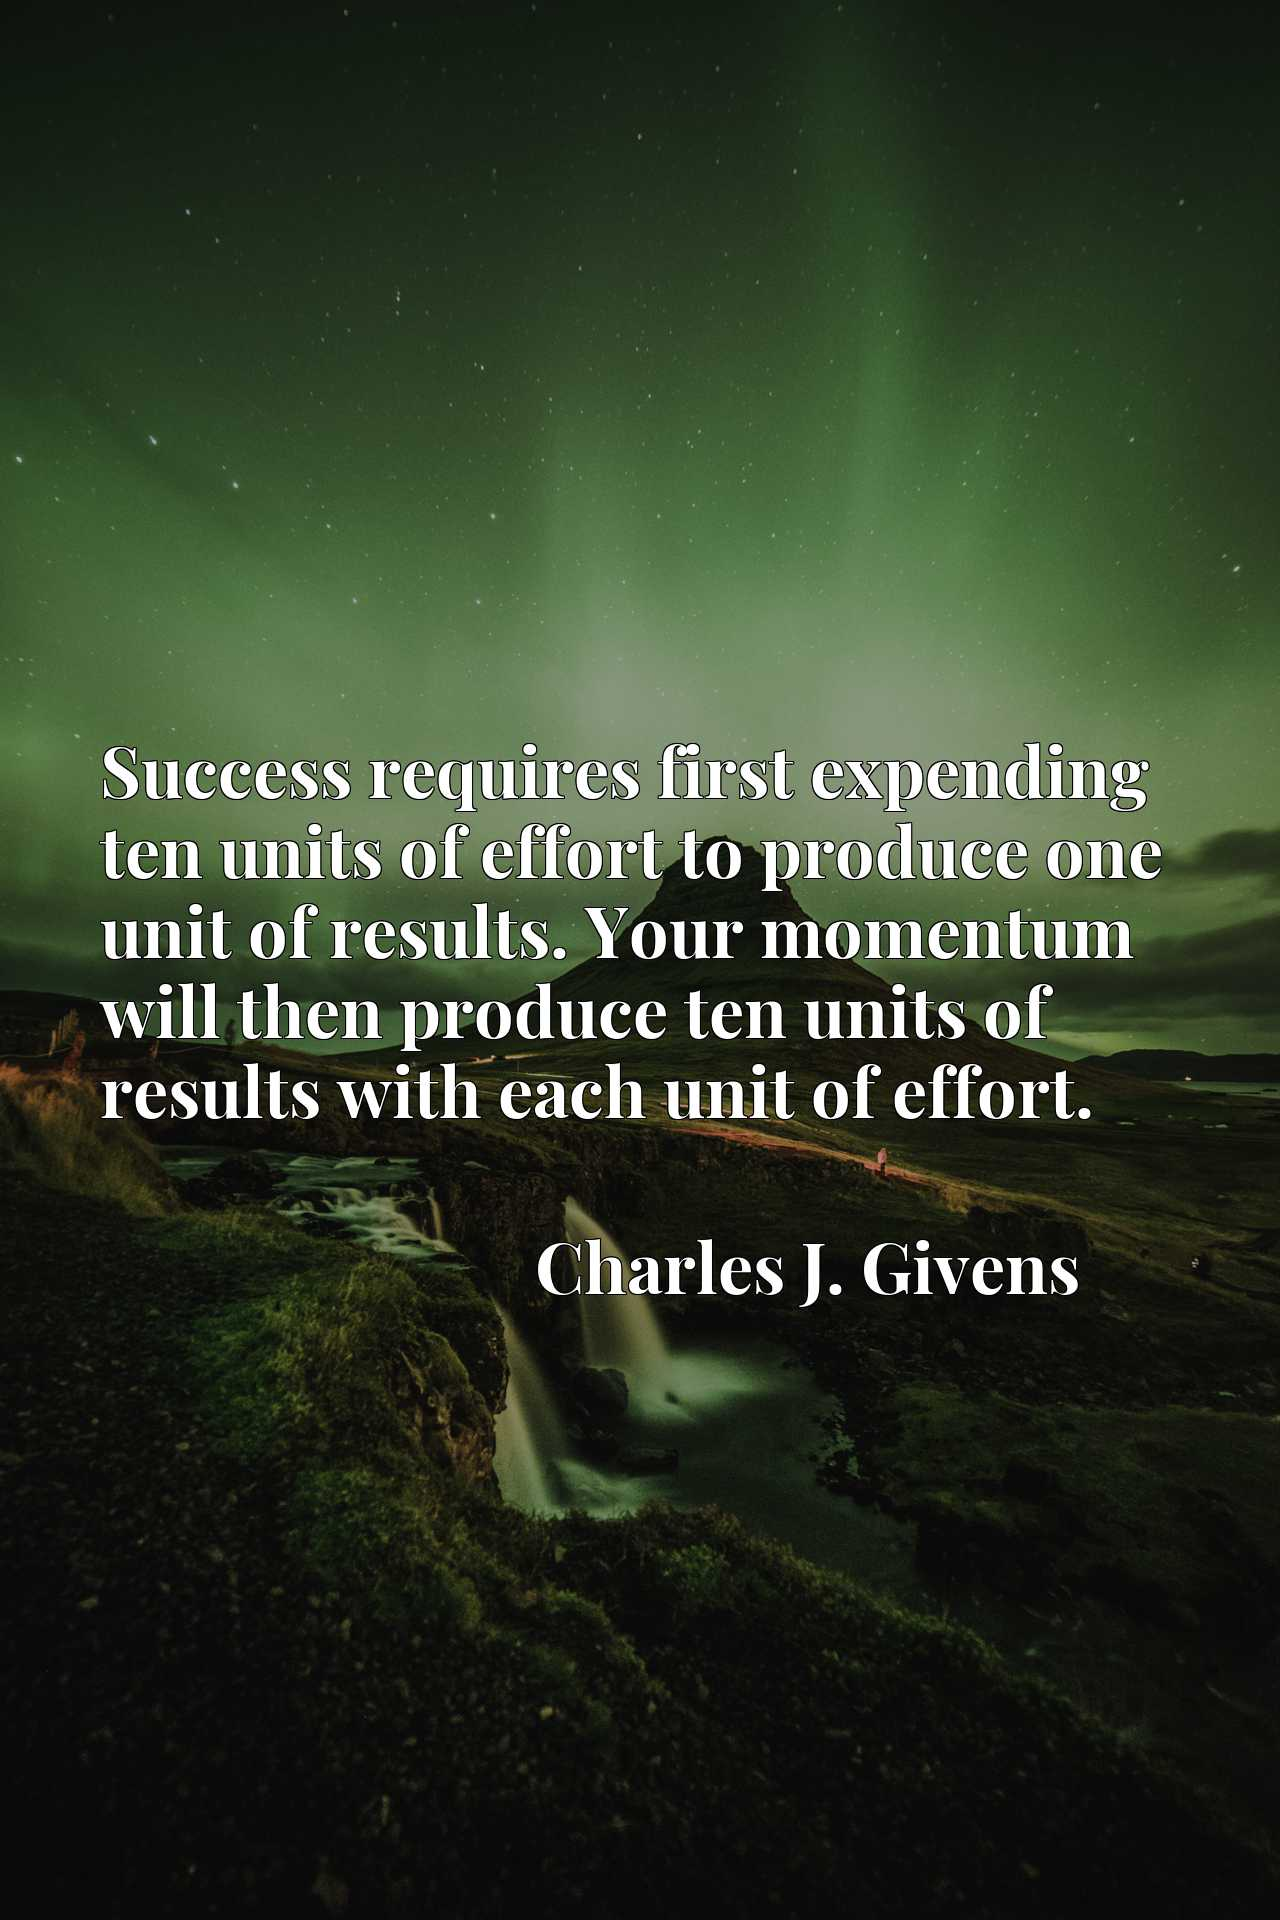 Success requires first expending ten units of effort to produce one unit of results. Your momentum will then produce ten units of results with each unit of effort.